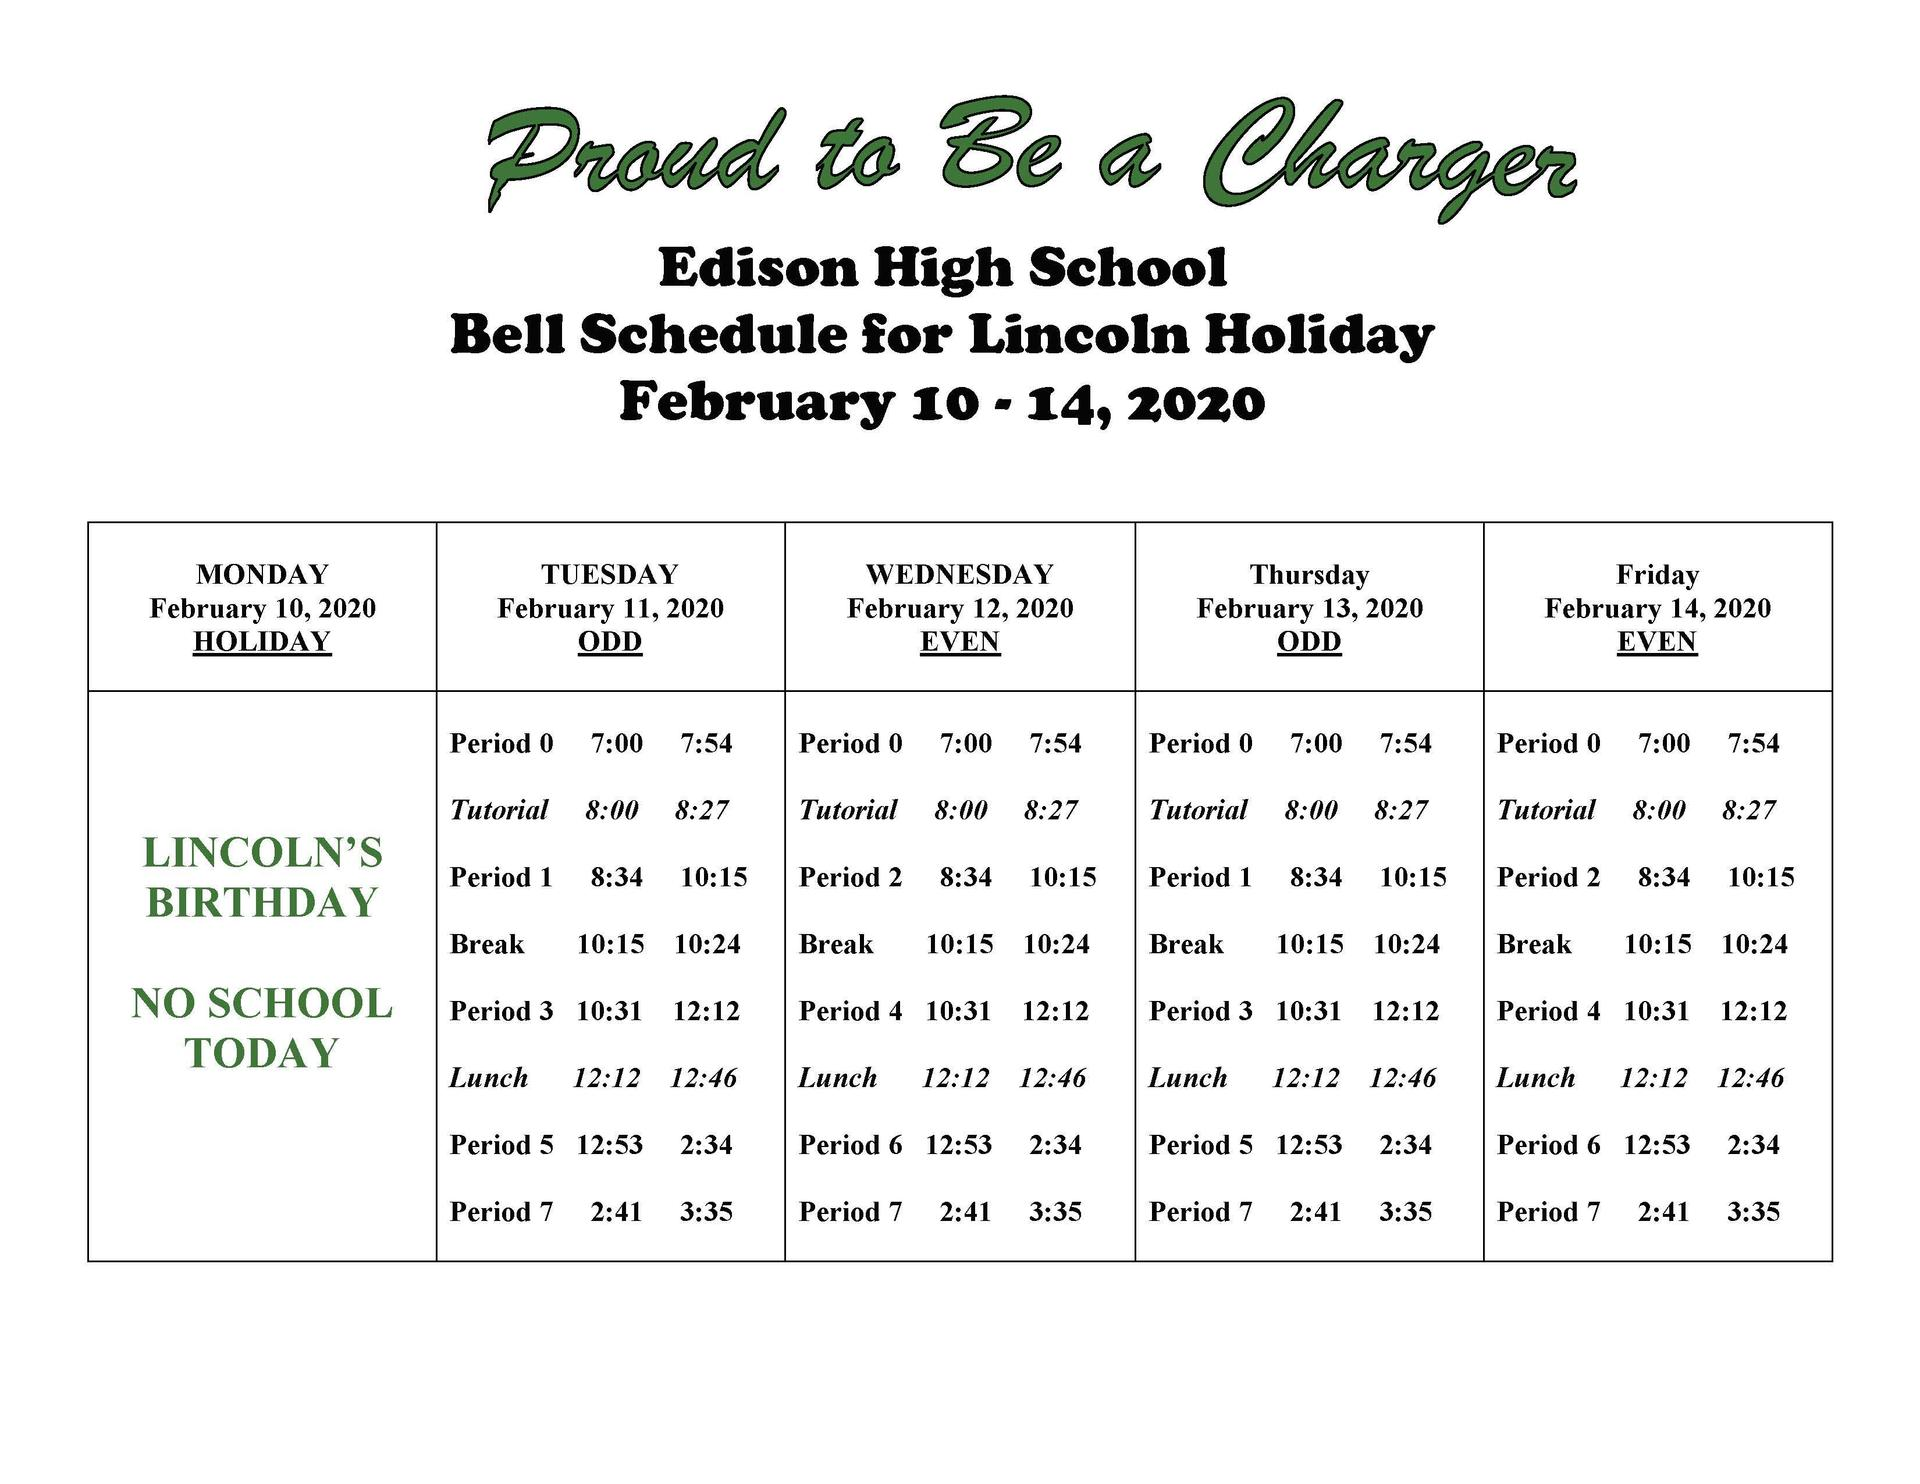 Csula Final Exam Schedule Fall 2020.Bell Schedules 2019 2020 Bell Schedules Edison High School